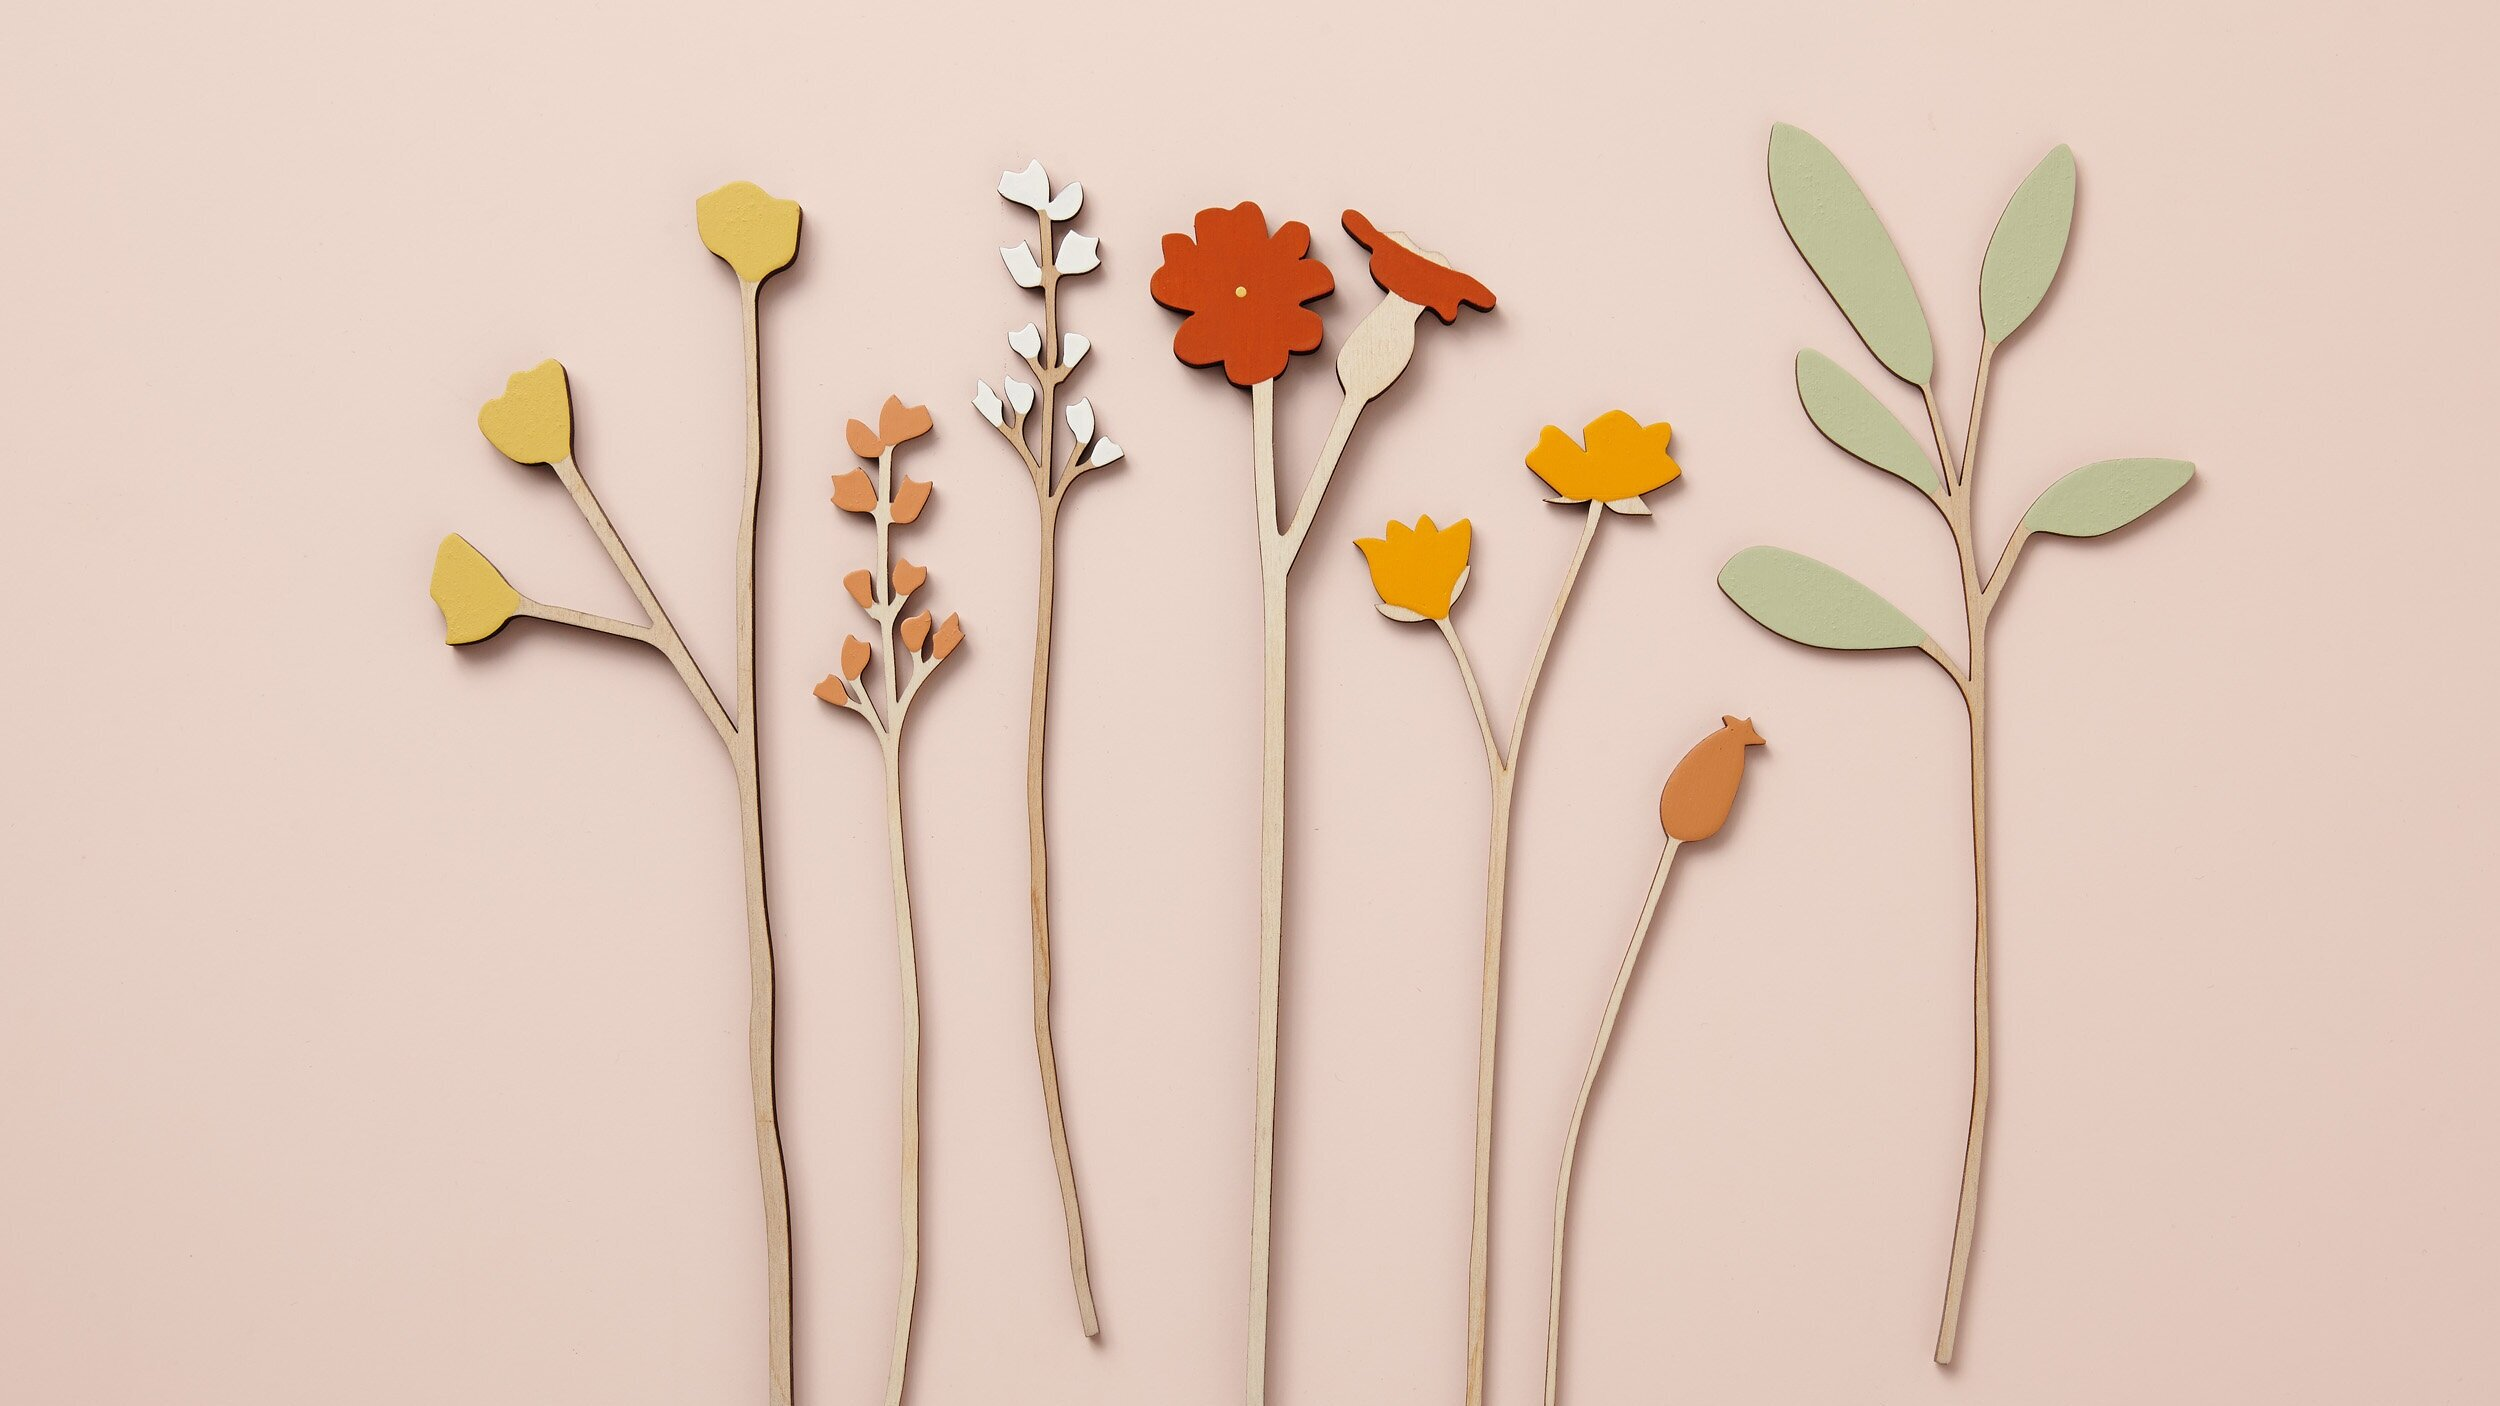 FOLK - A new collection of decorative ornaments inspired by the folk tales and customs of the British Isles